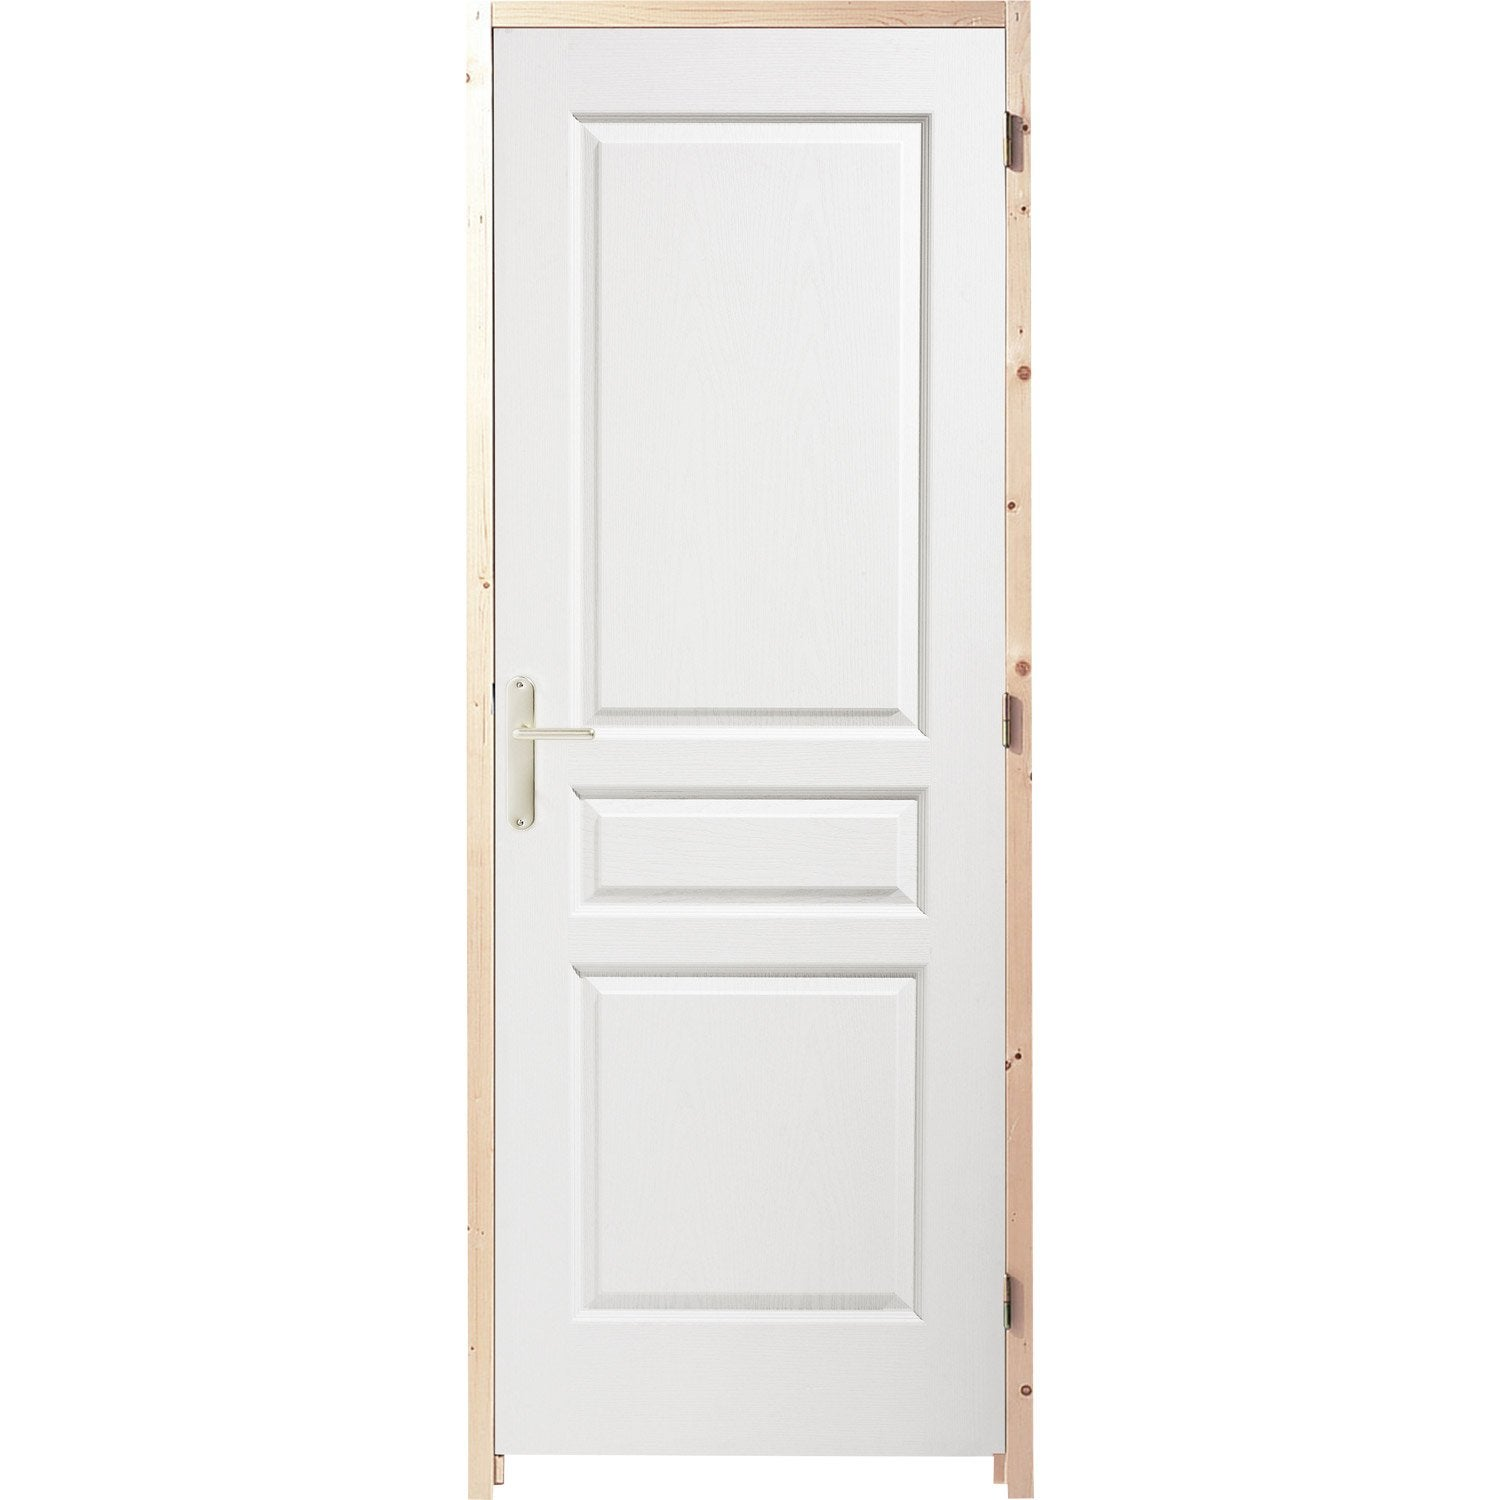 Bloc porte acoustique postform x cm leroy merlin - Isolation acoustique porte ...